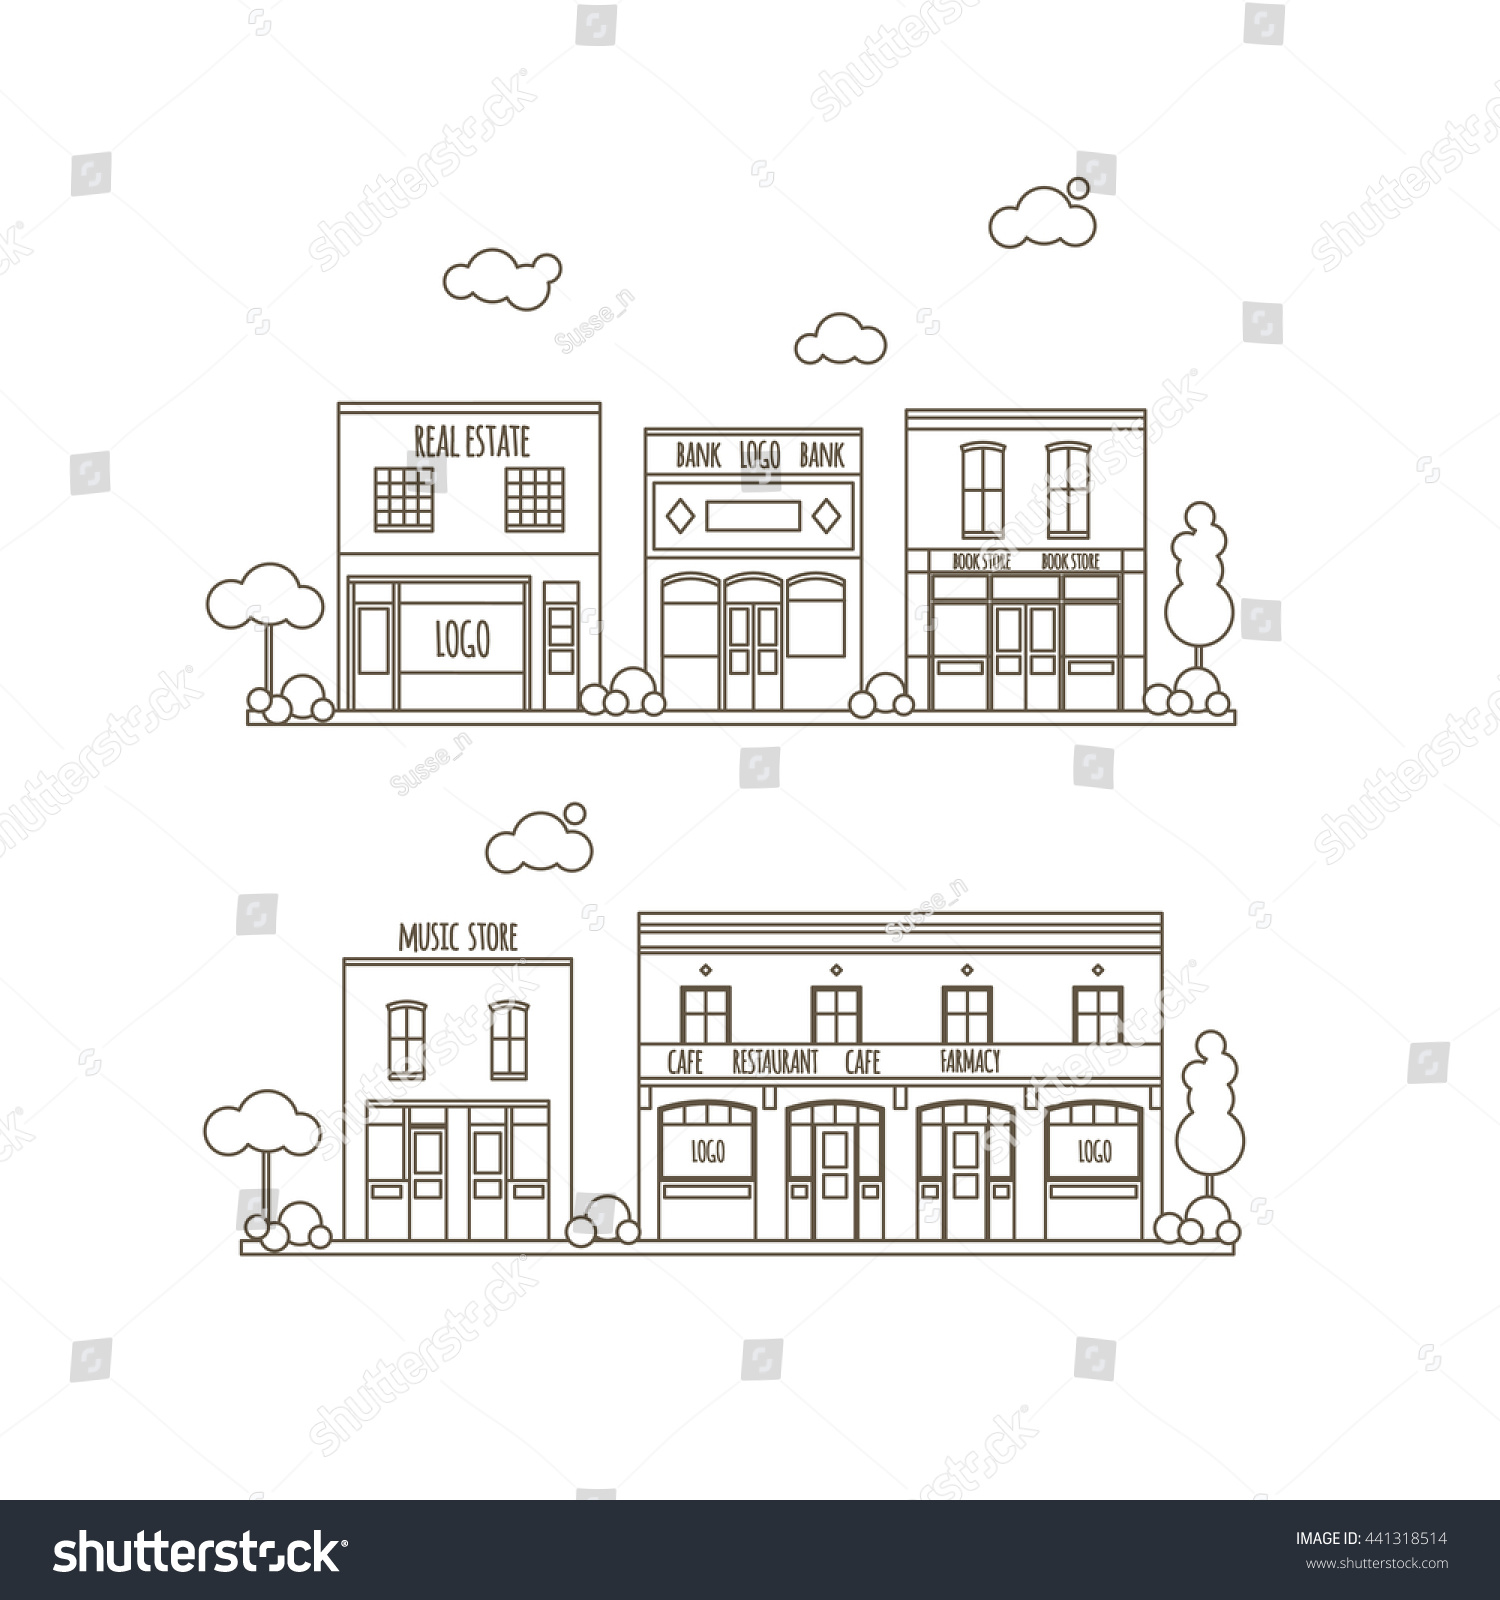 small town business outline Writing a business plan small business development center business plan outline cover sheet: business name, address in town, your competition.